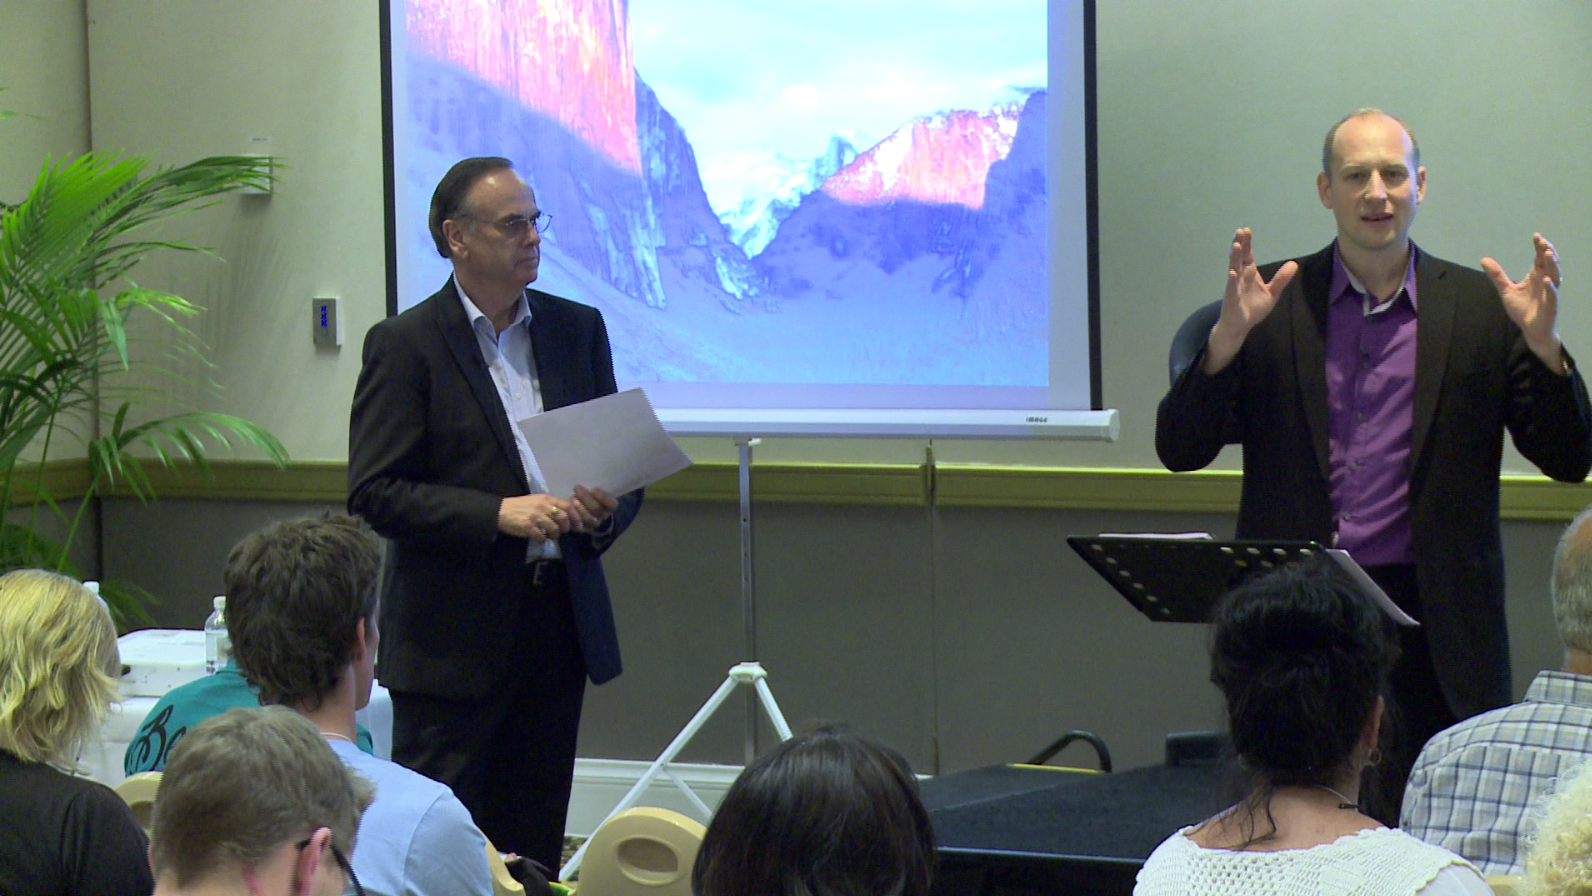 Scott and Greg as Corporate Trainers in Sydney - Employee Engagment - Leadership Training